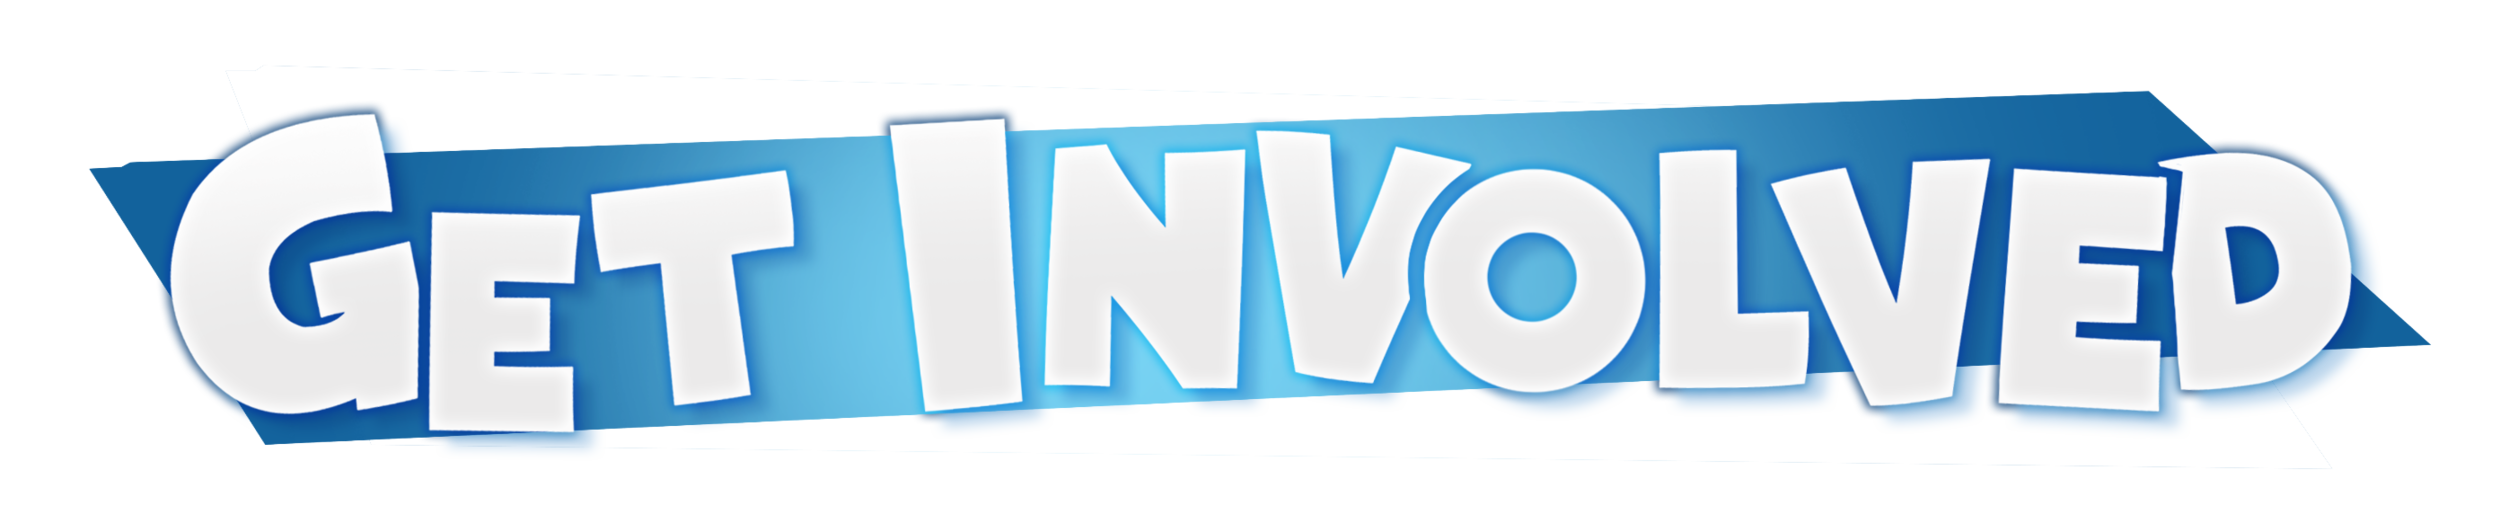 Get_Involved_icon.png